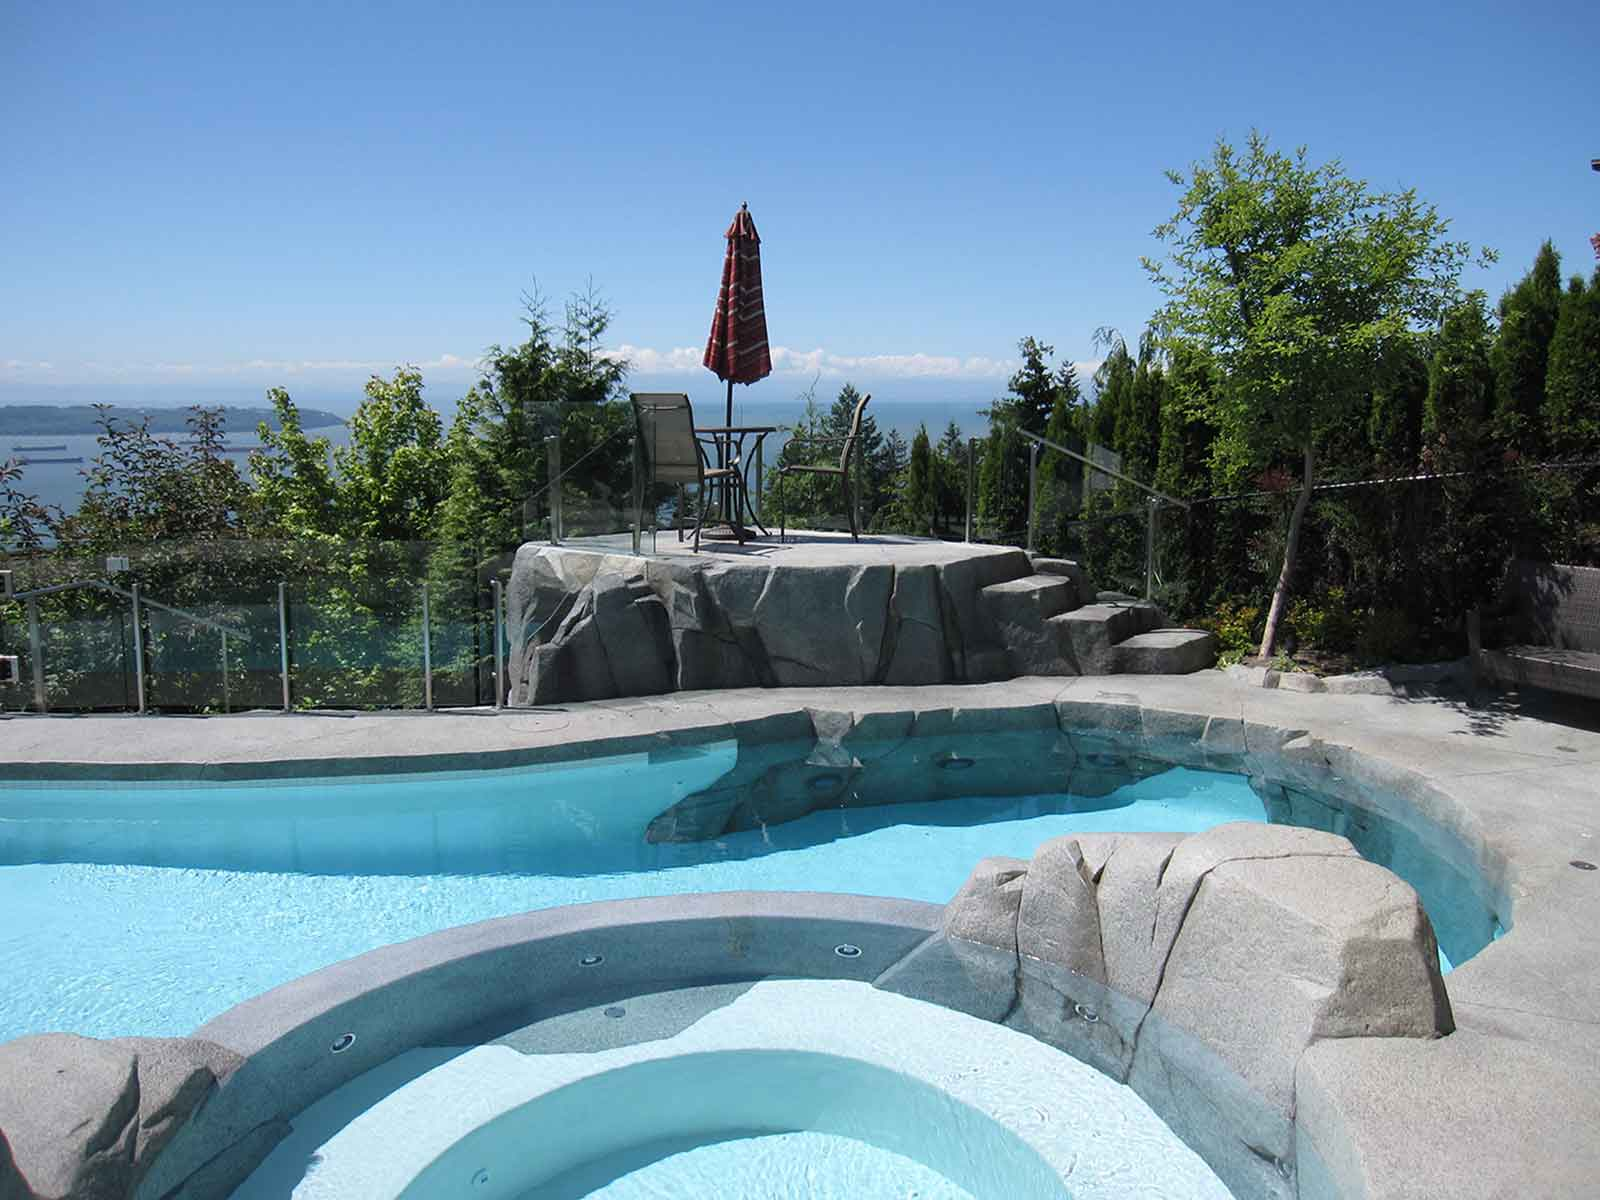 Contemporary design for in-ground swimming pool and hot tub